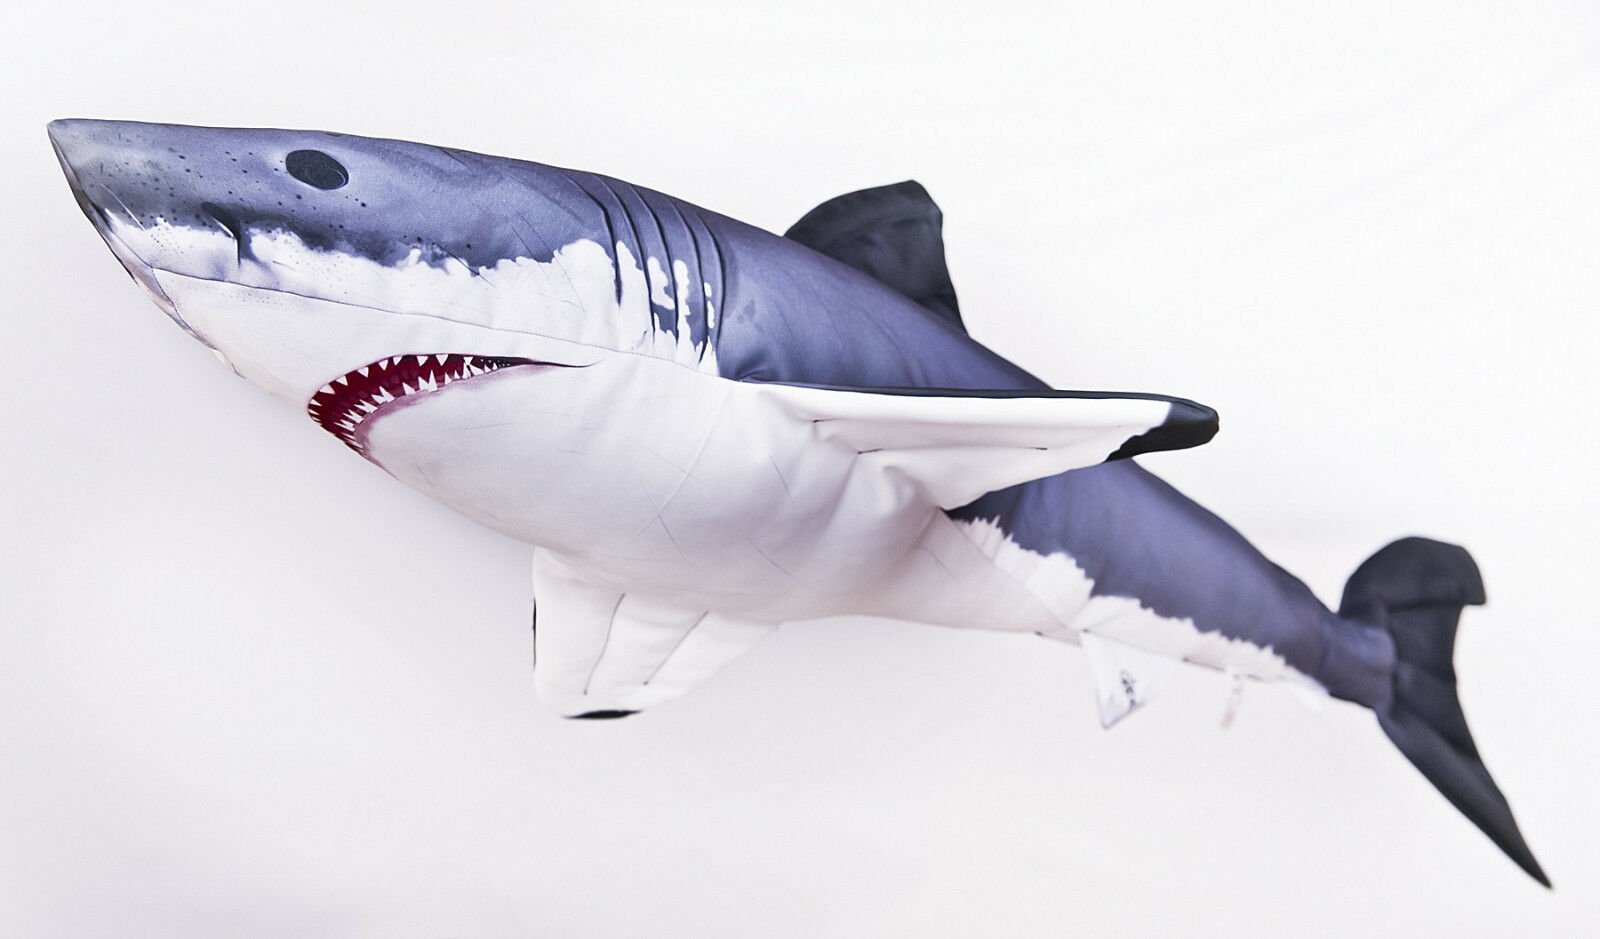 The Great Weiß Shark 120cm  Giant Jaws. GABY SOFT TOY FISH PILLOW 47INCH long